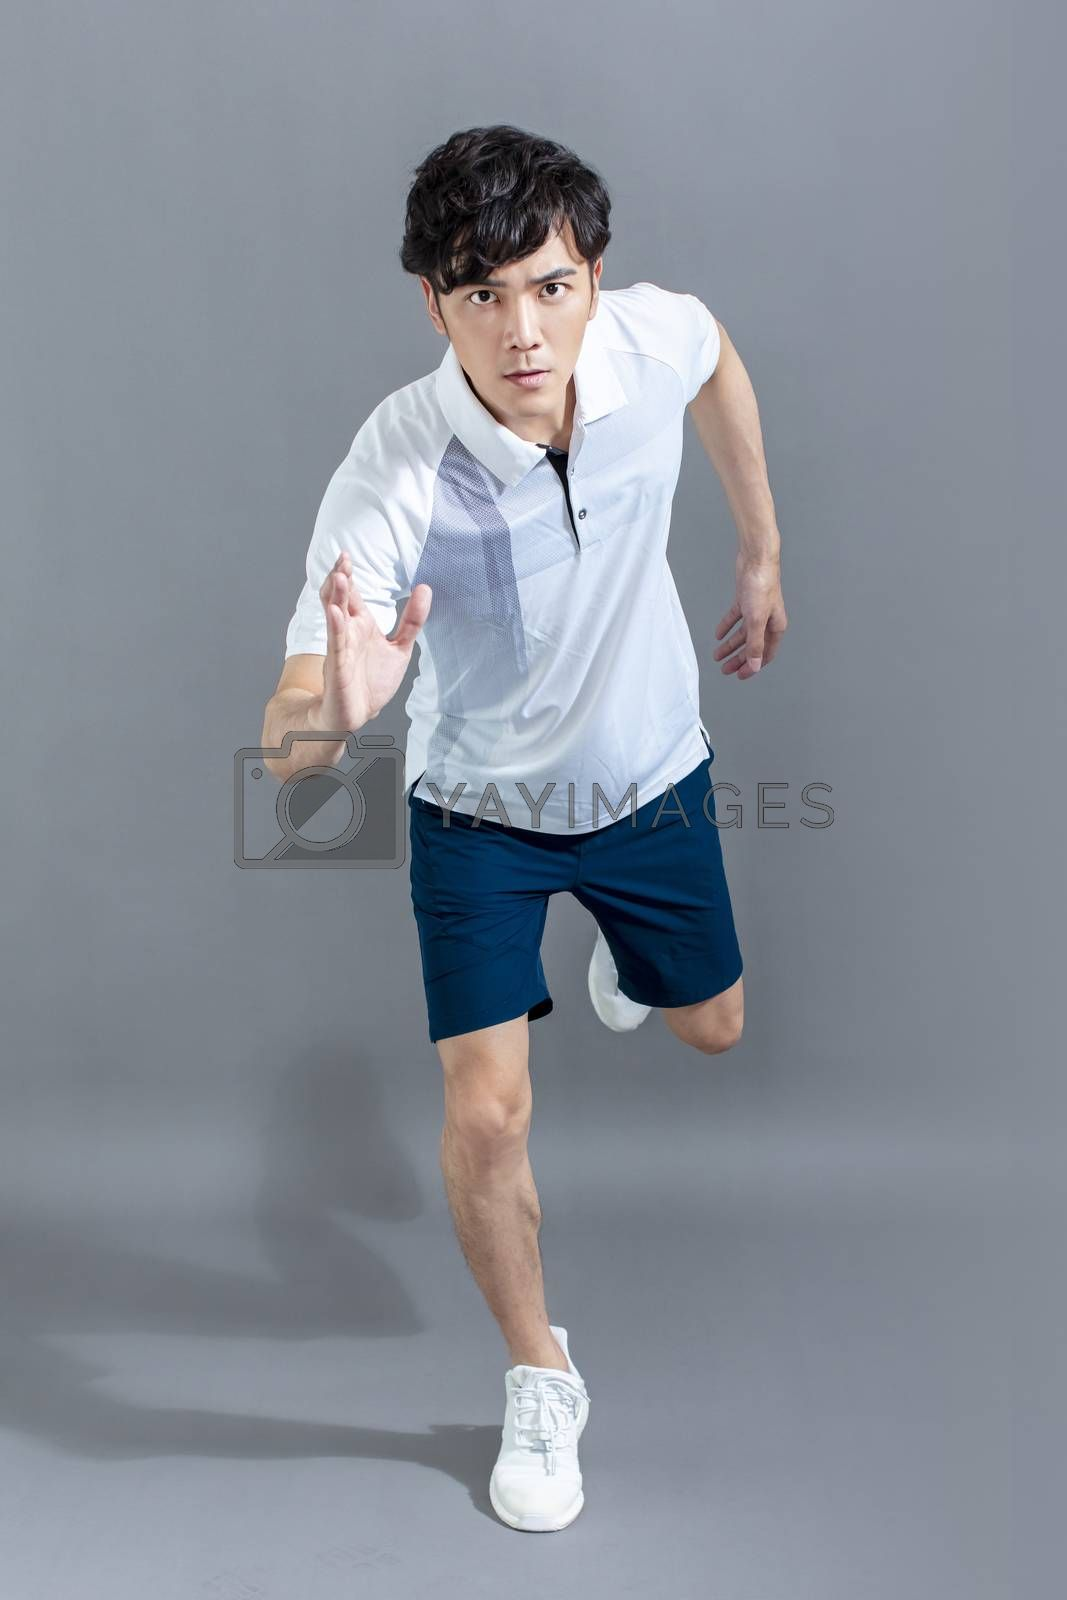 portrait of  fitness young man running on the gray background by tomwang